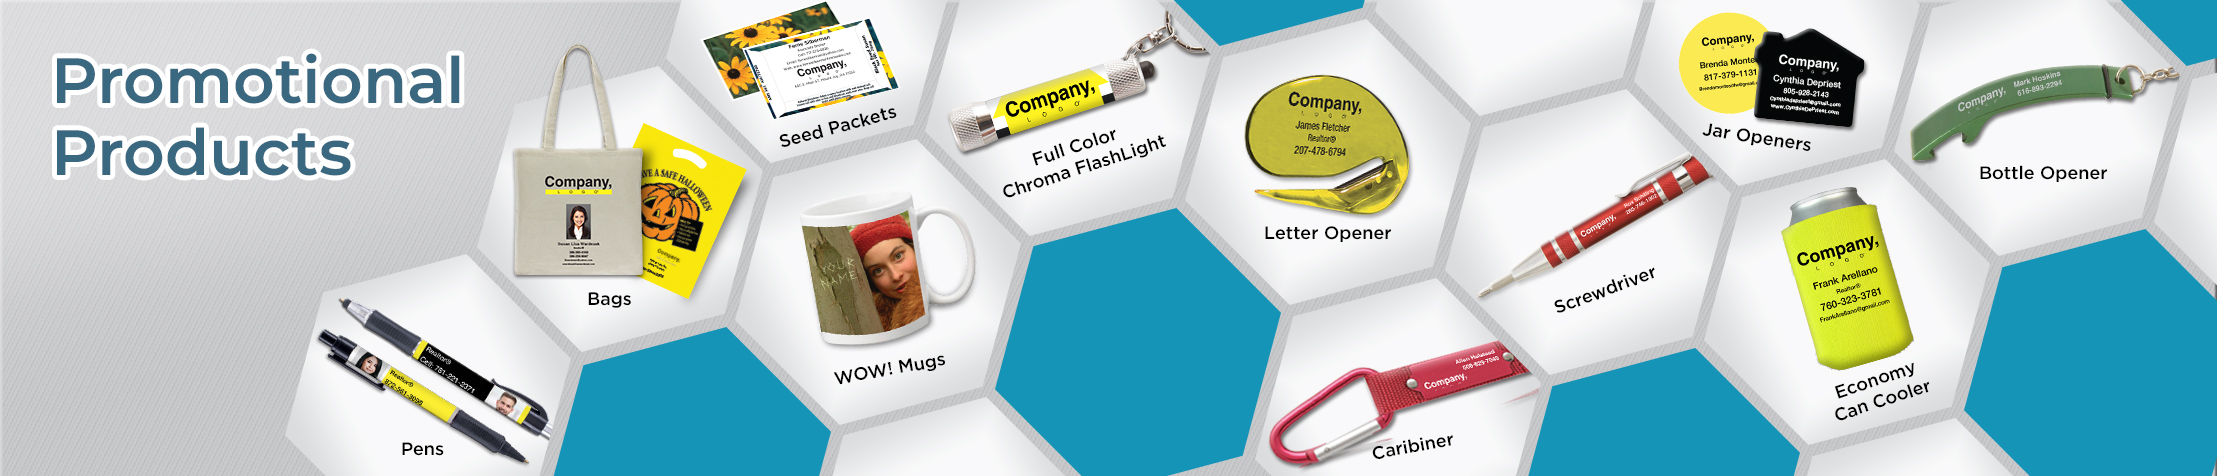 Weichert Real Estate Promotional Products - Weichert  personalized promotional pens, key chains, tote bags, flashlights, mugs | BestPrintBuy.com